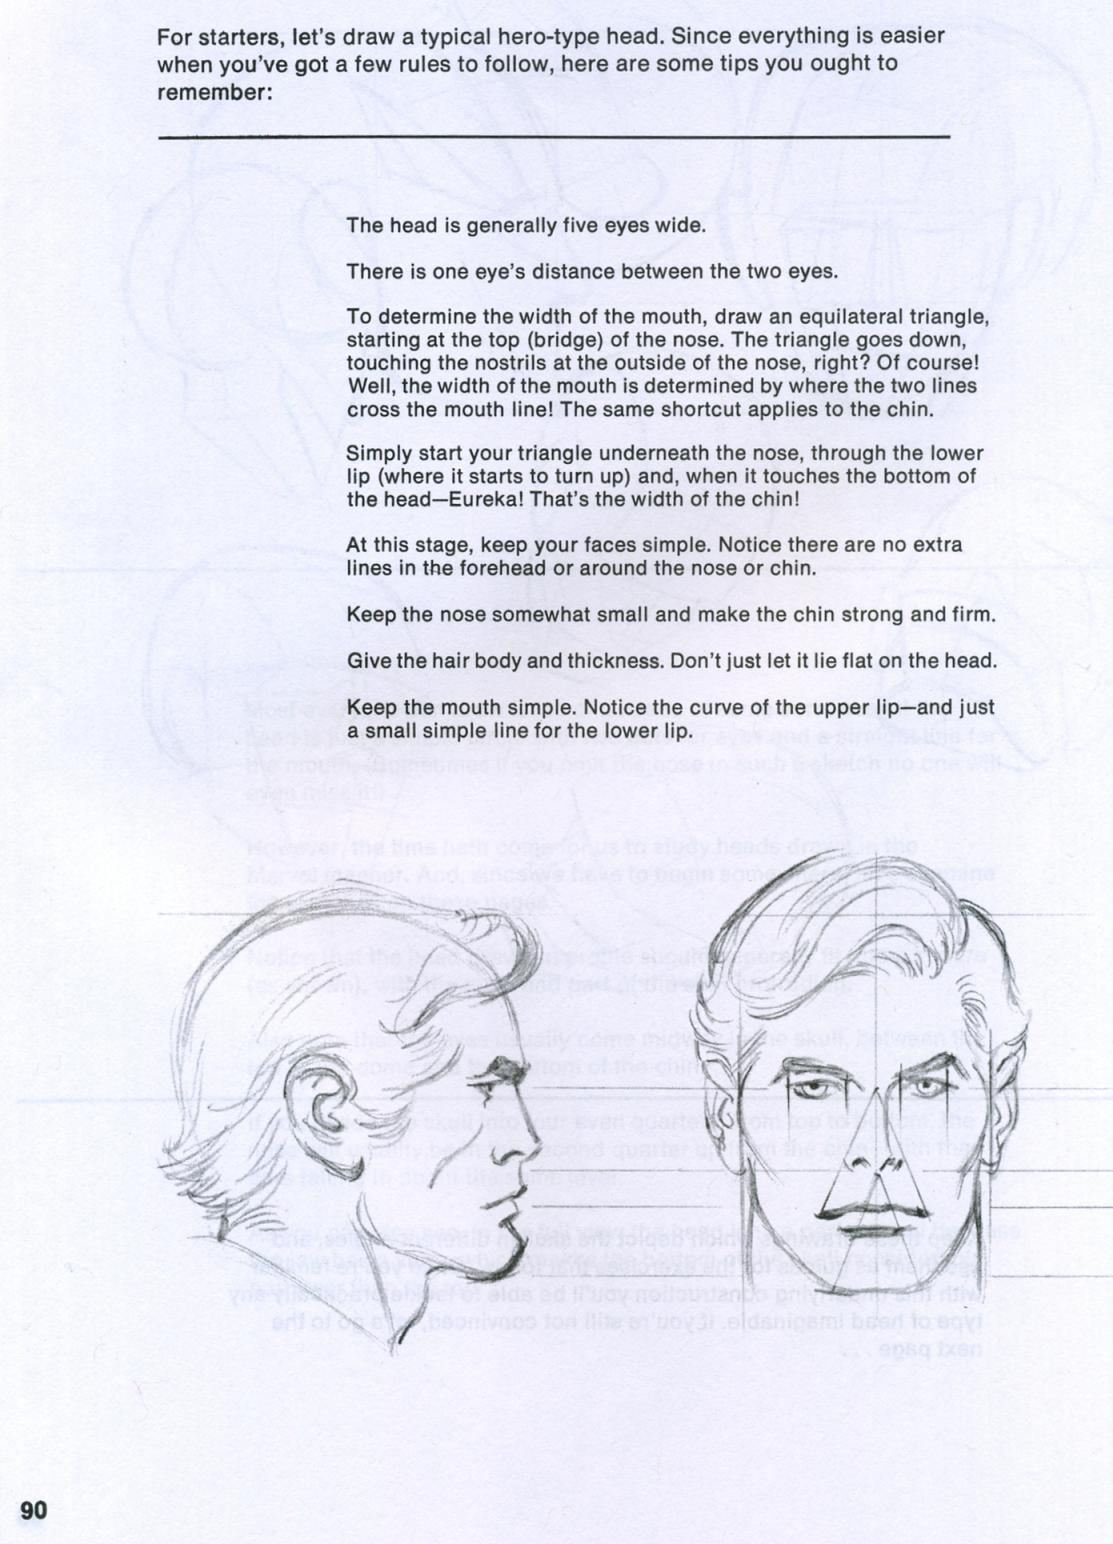 john buscema figure and head lessons (14)